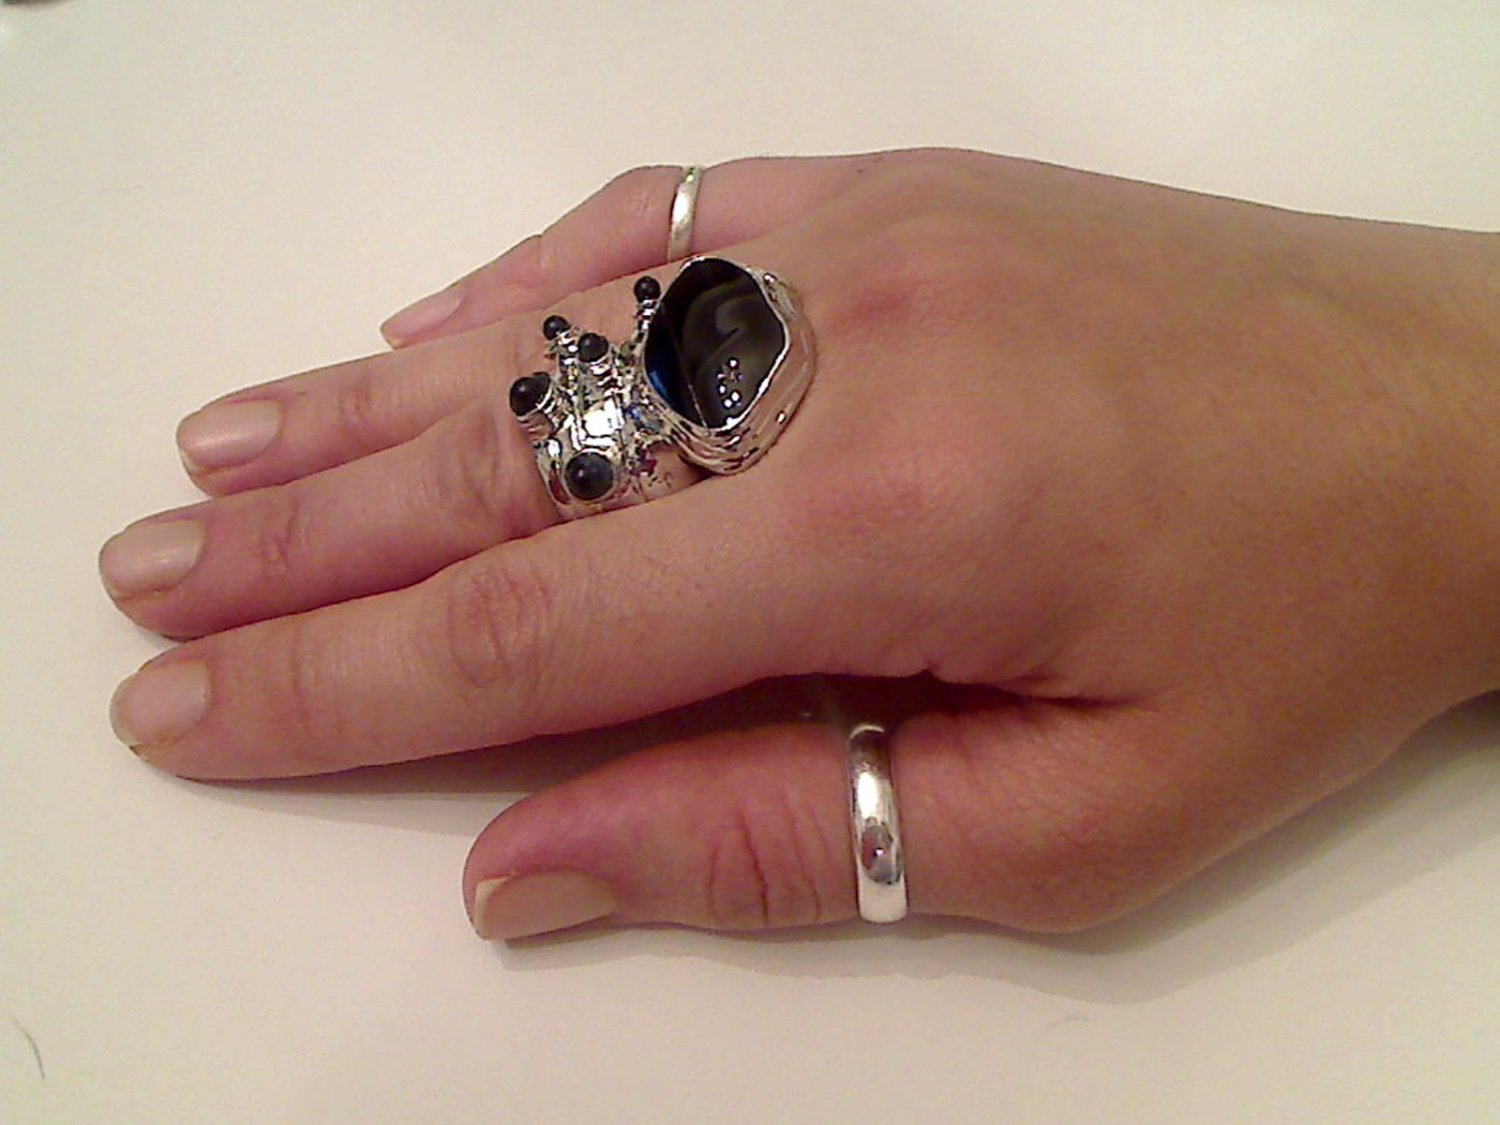 BLACK ARTY CHUNKY SPIKEY MOON KNUCKLE RING IN SILVER SIZES 7*8*9*10